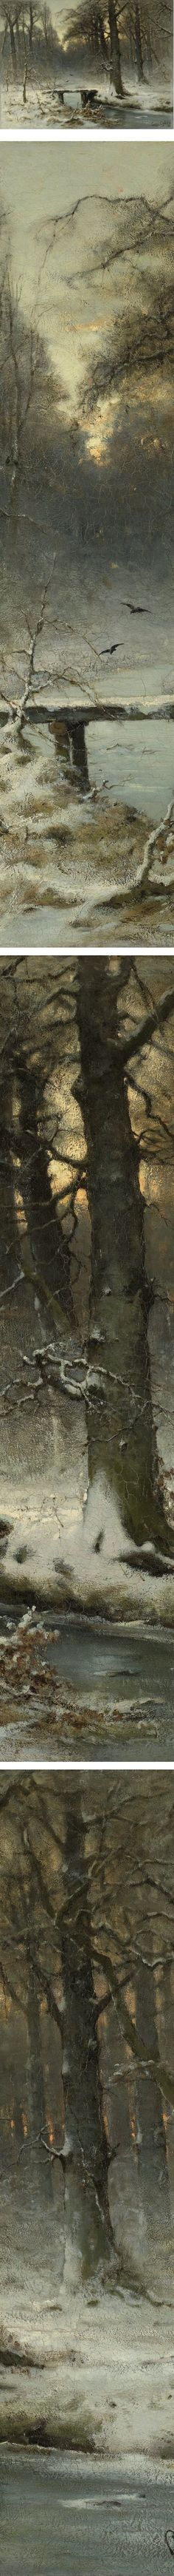 Een januari-avond in het Haagse bos (A January evening in the Hague forest), Louis Apol